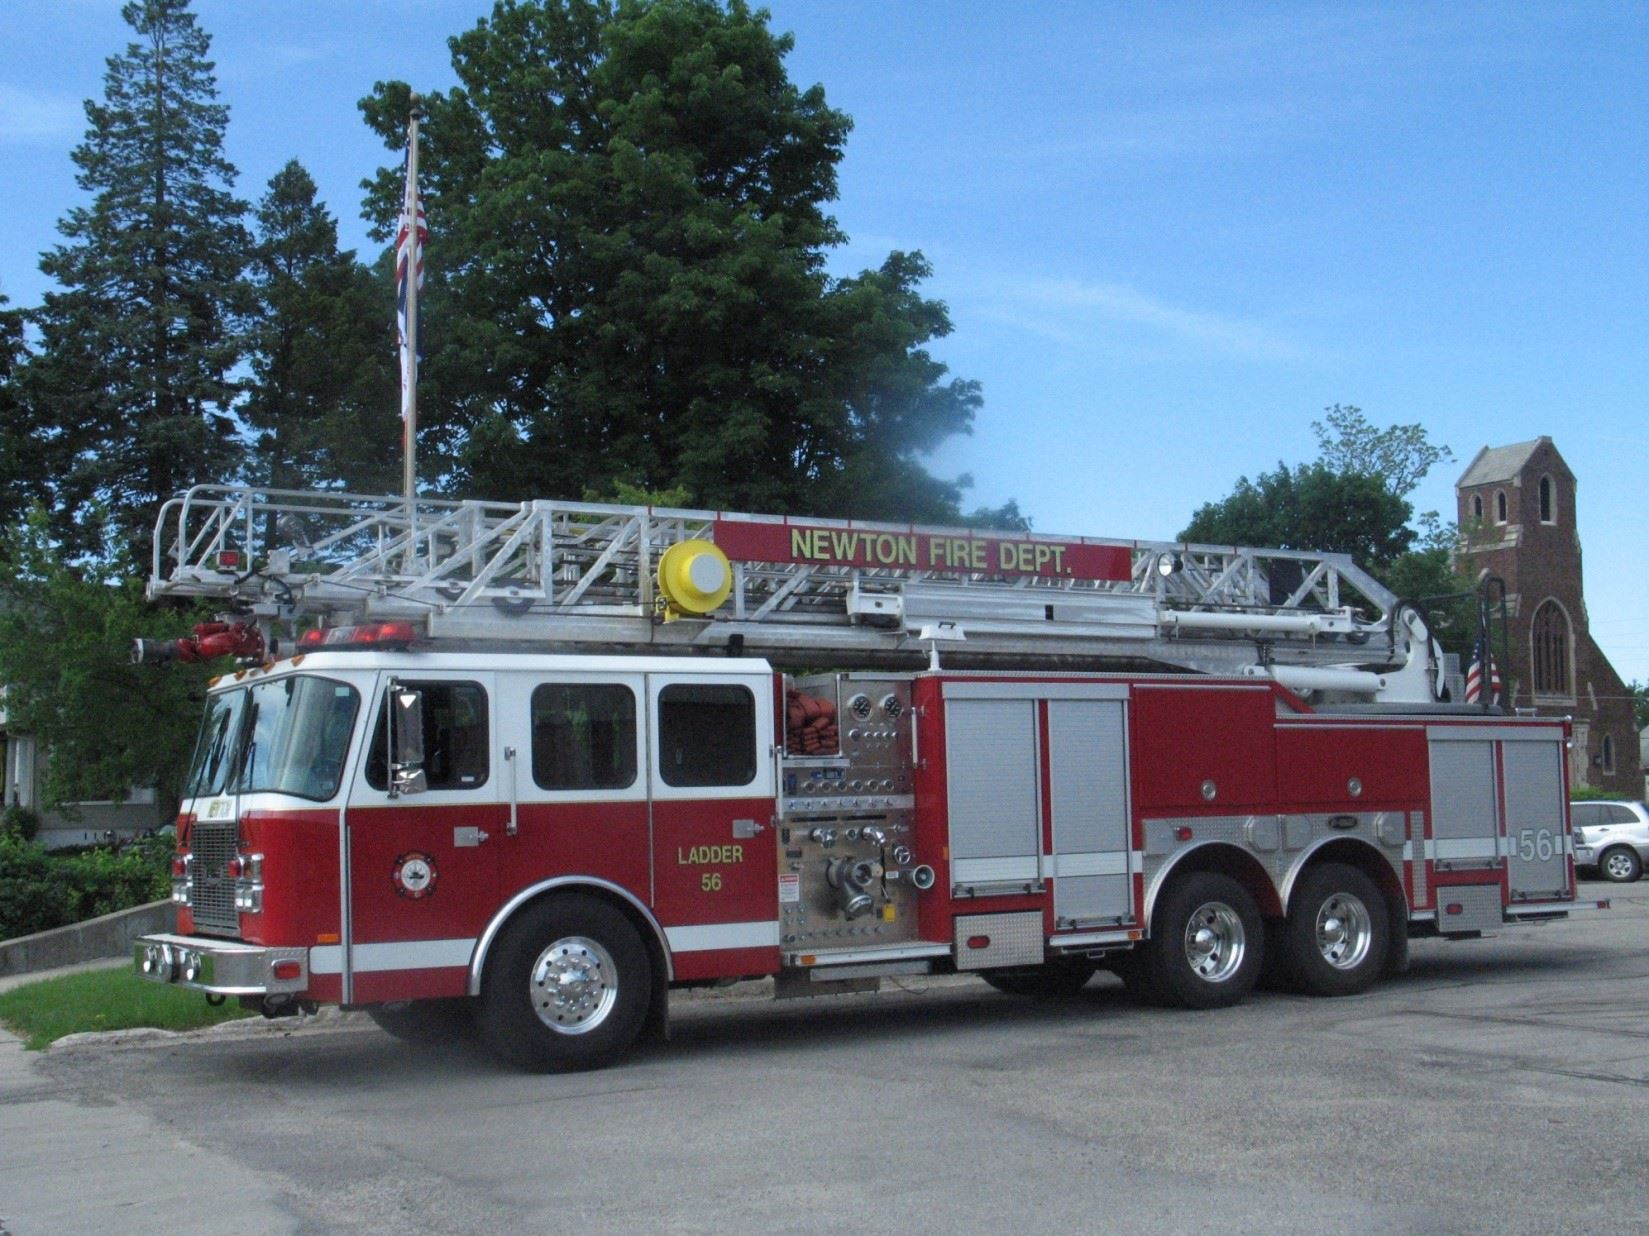 Ladder Truck in Indiana for Repairs